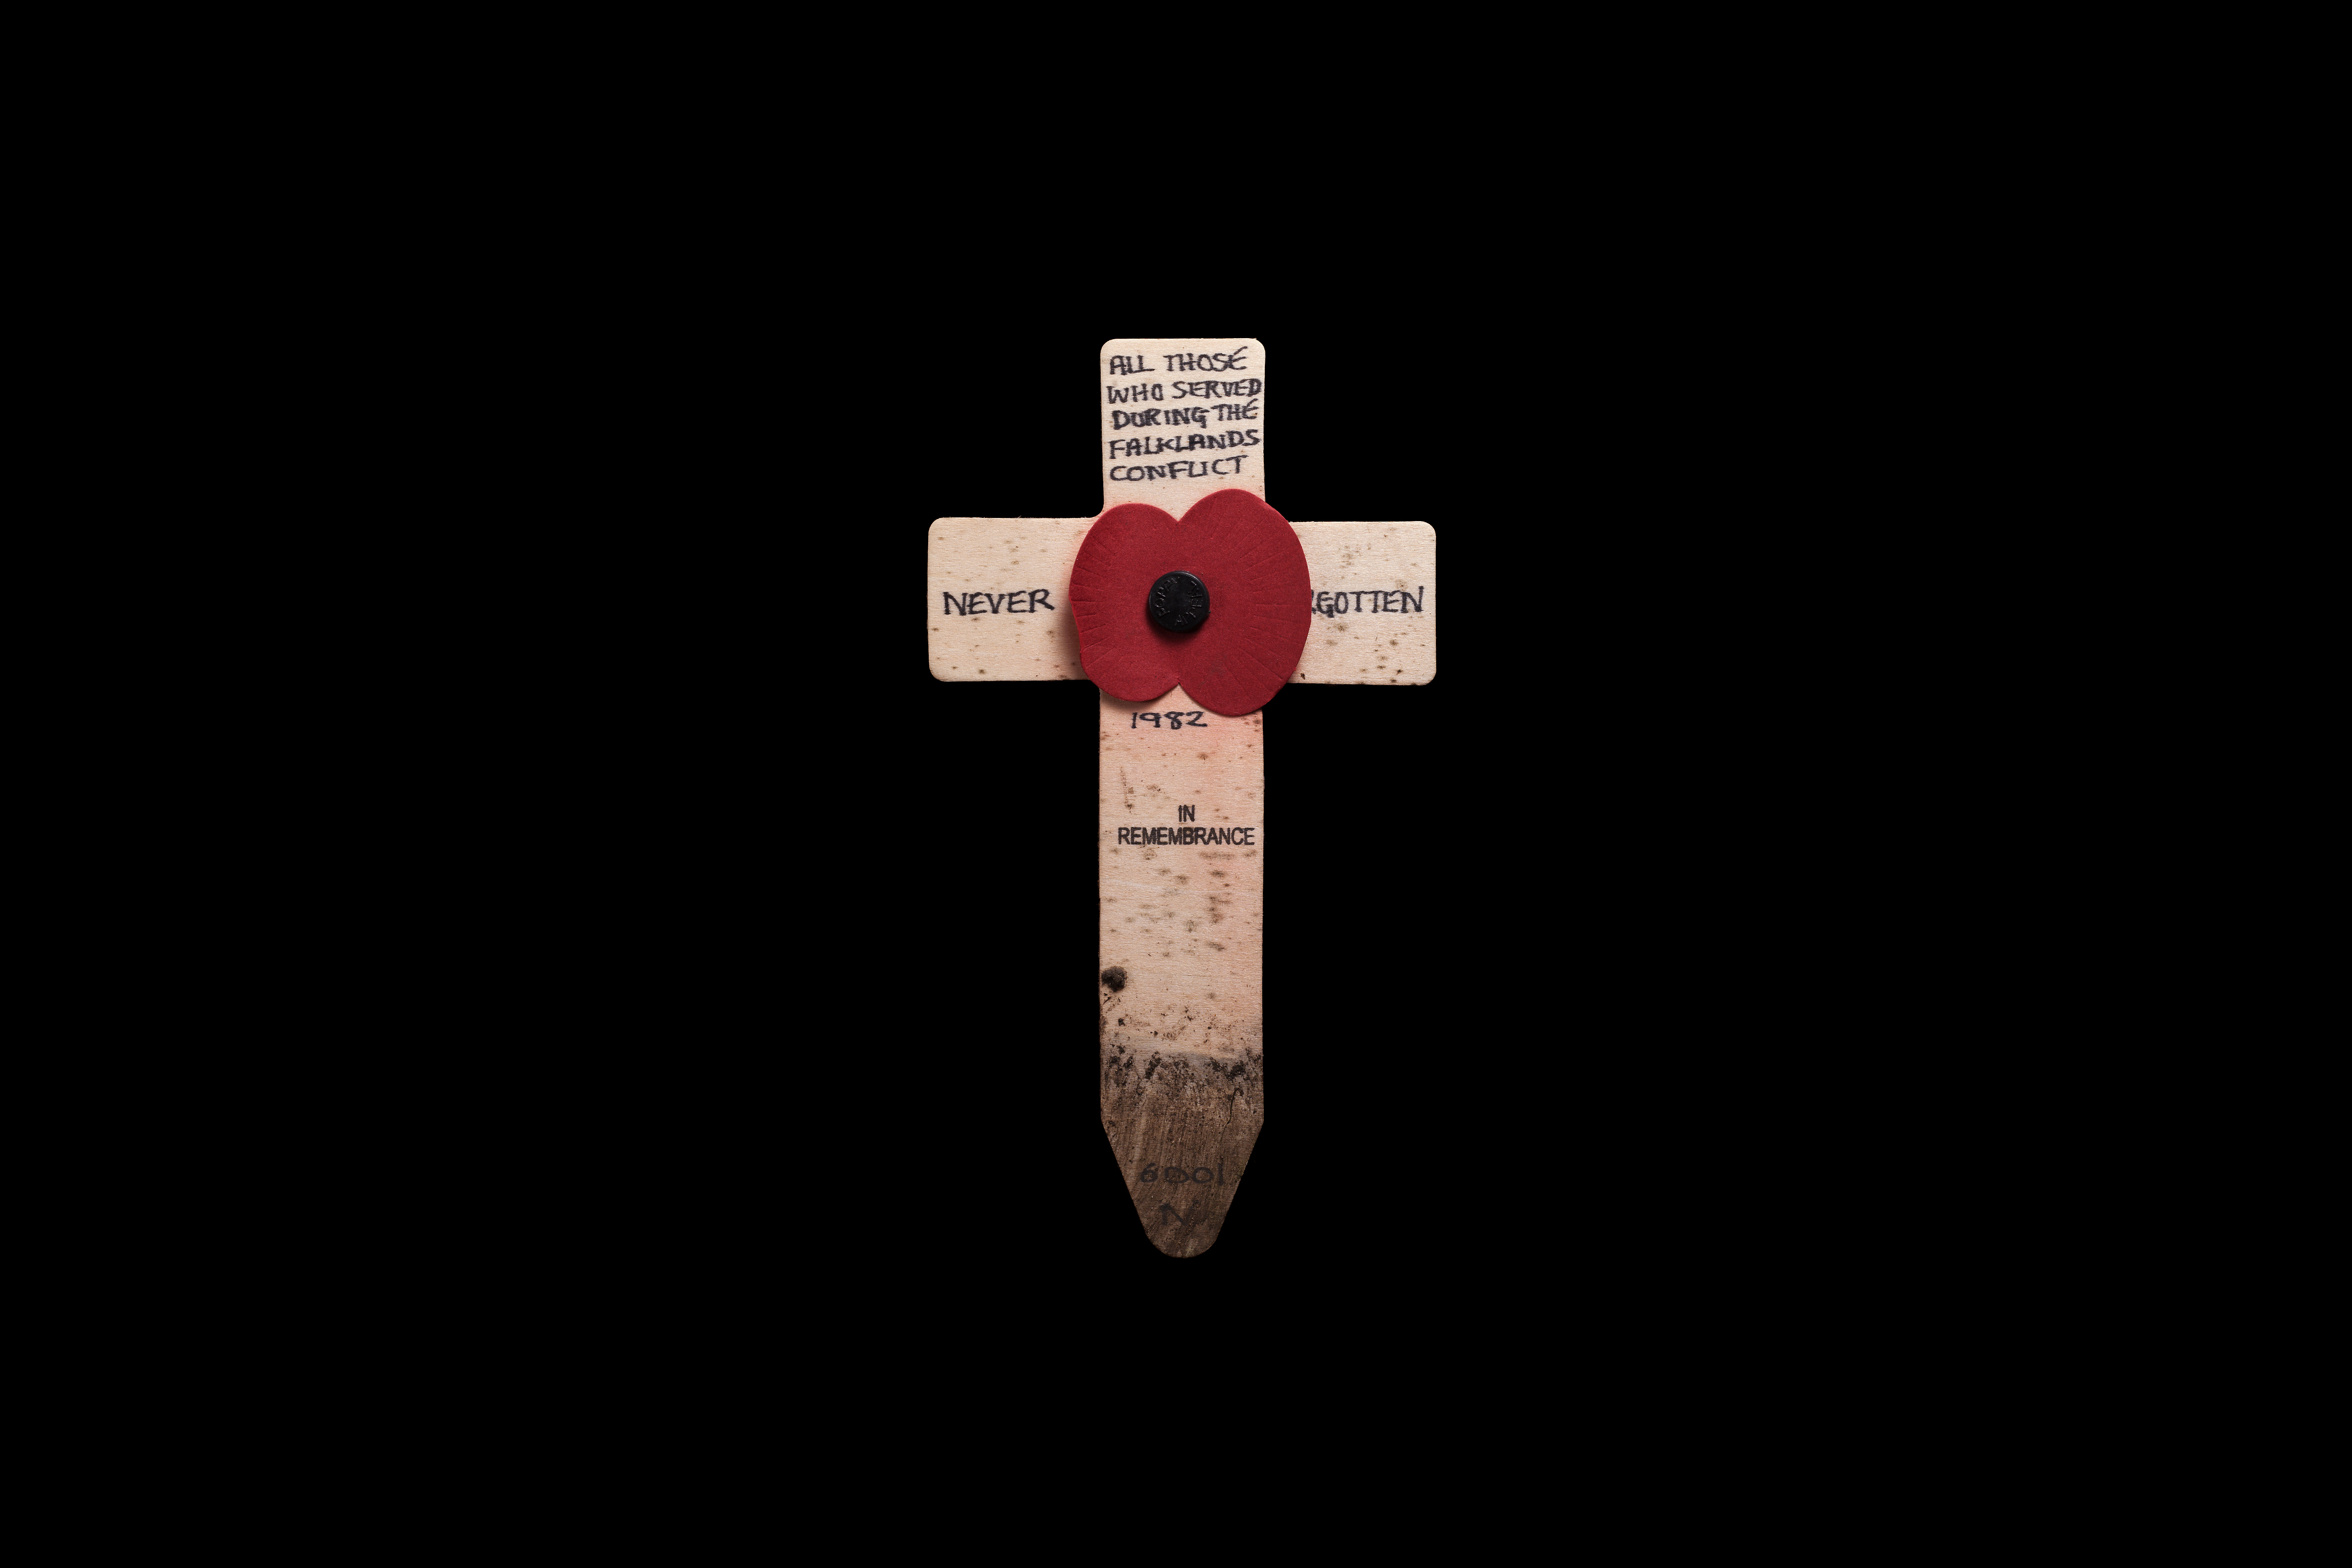 Remembrance Cross #21